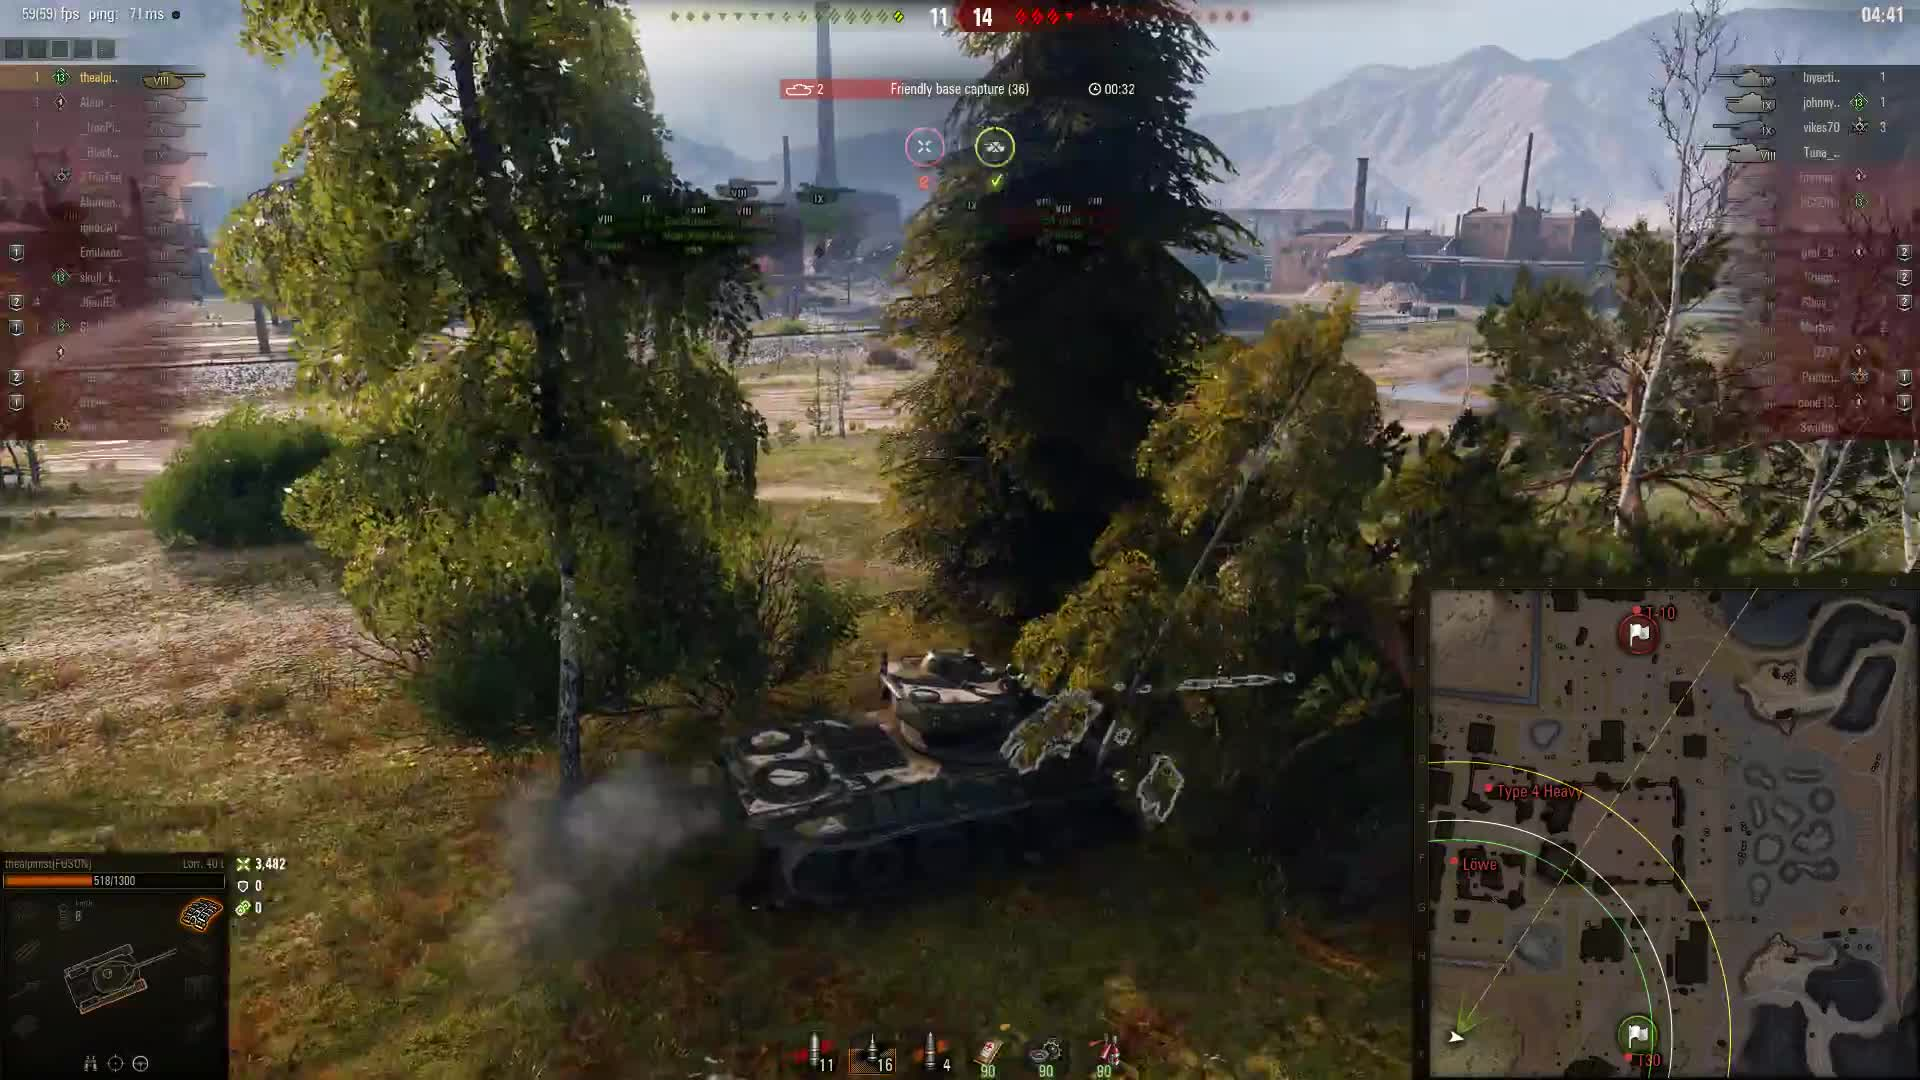 WorldofTanks, love it when people cap in the open GIFs